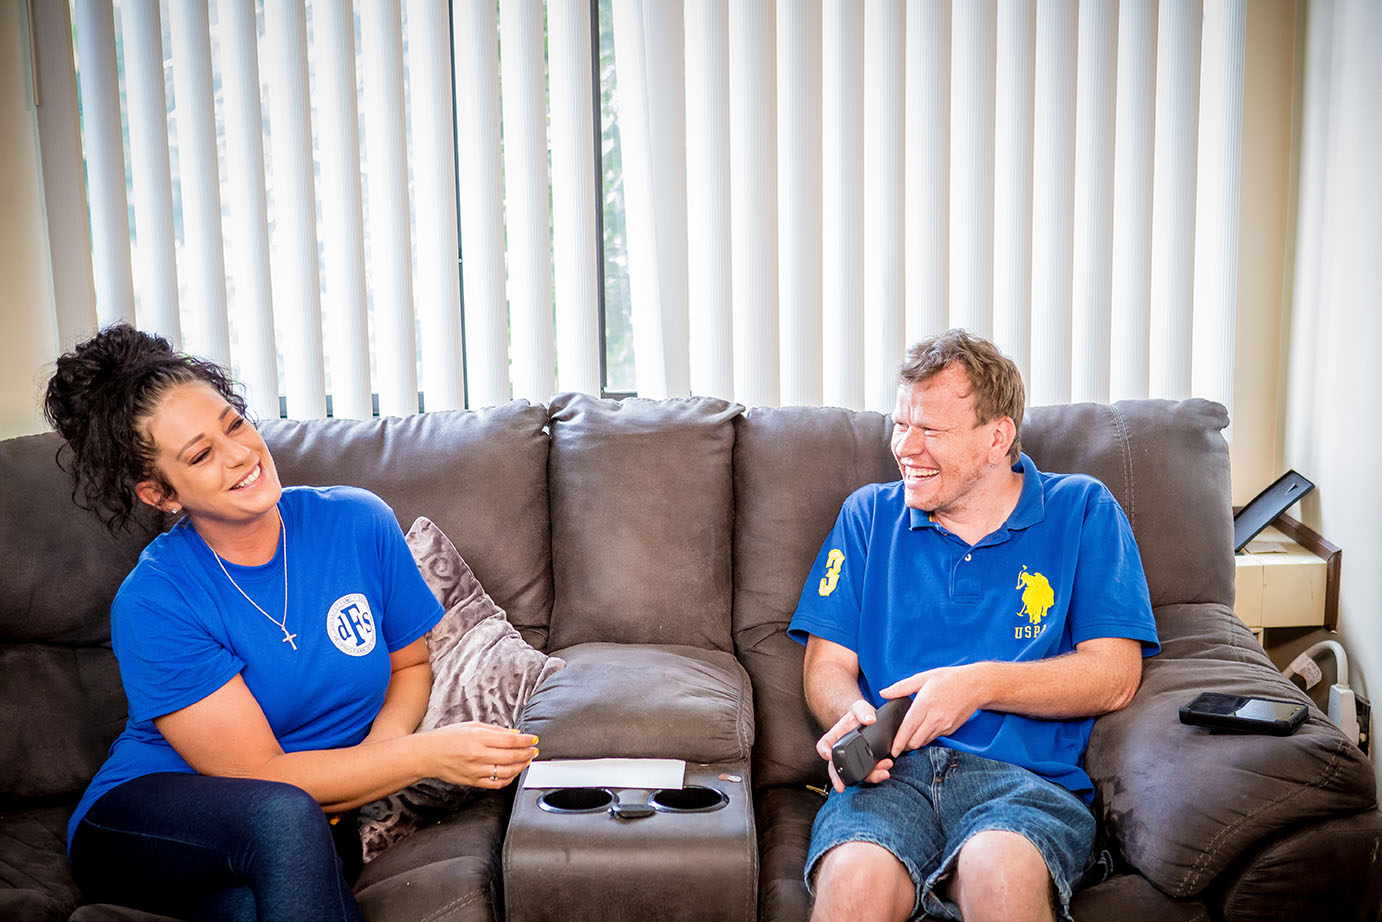 Man and woman smiling on couch talking